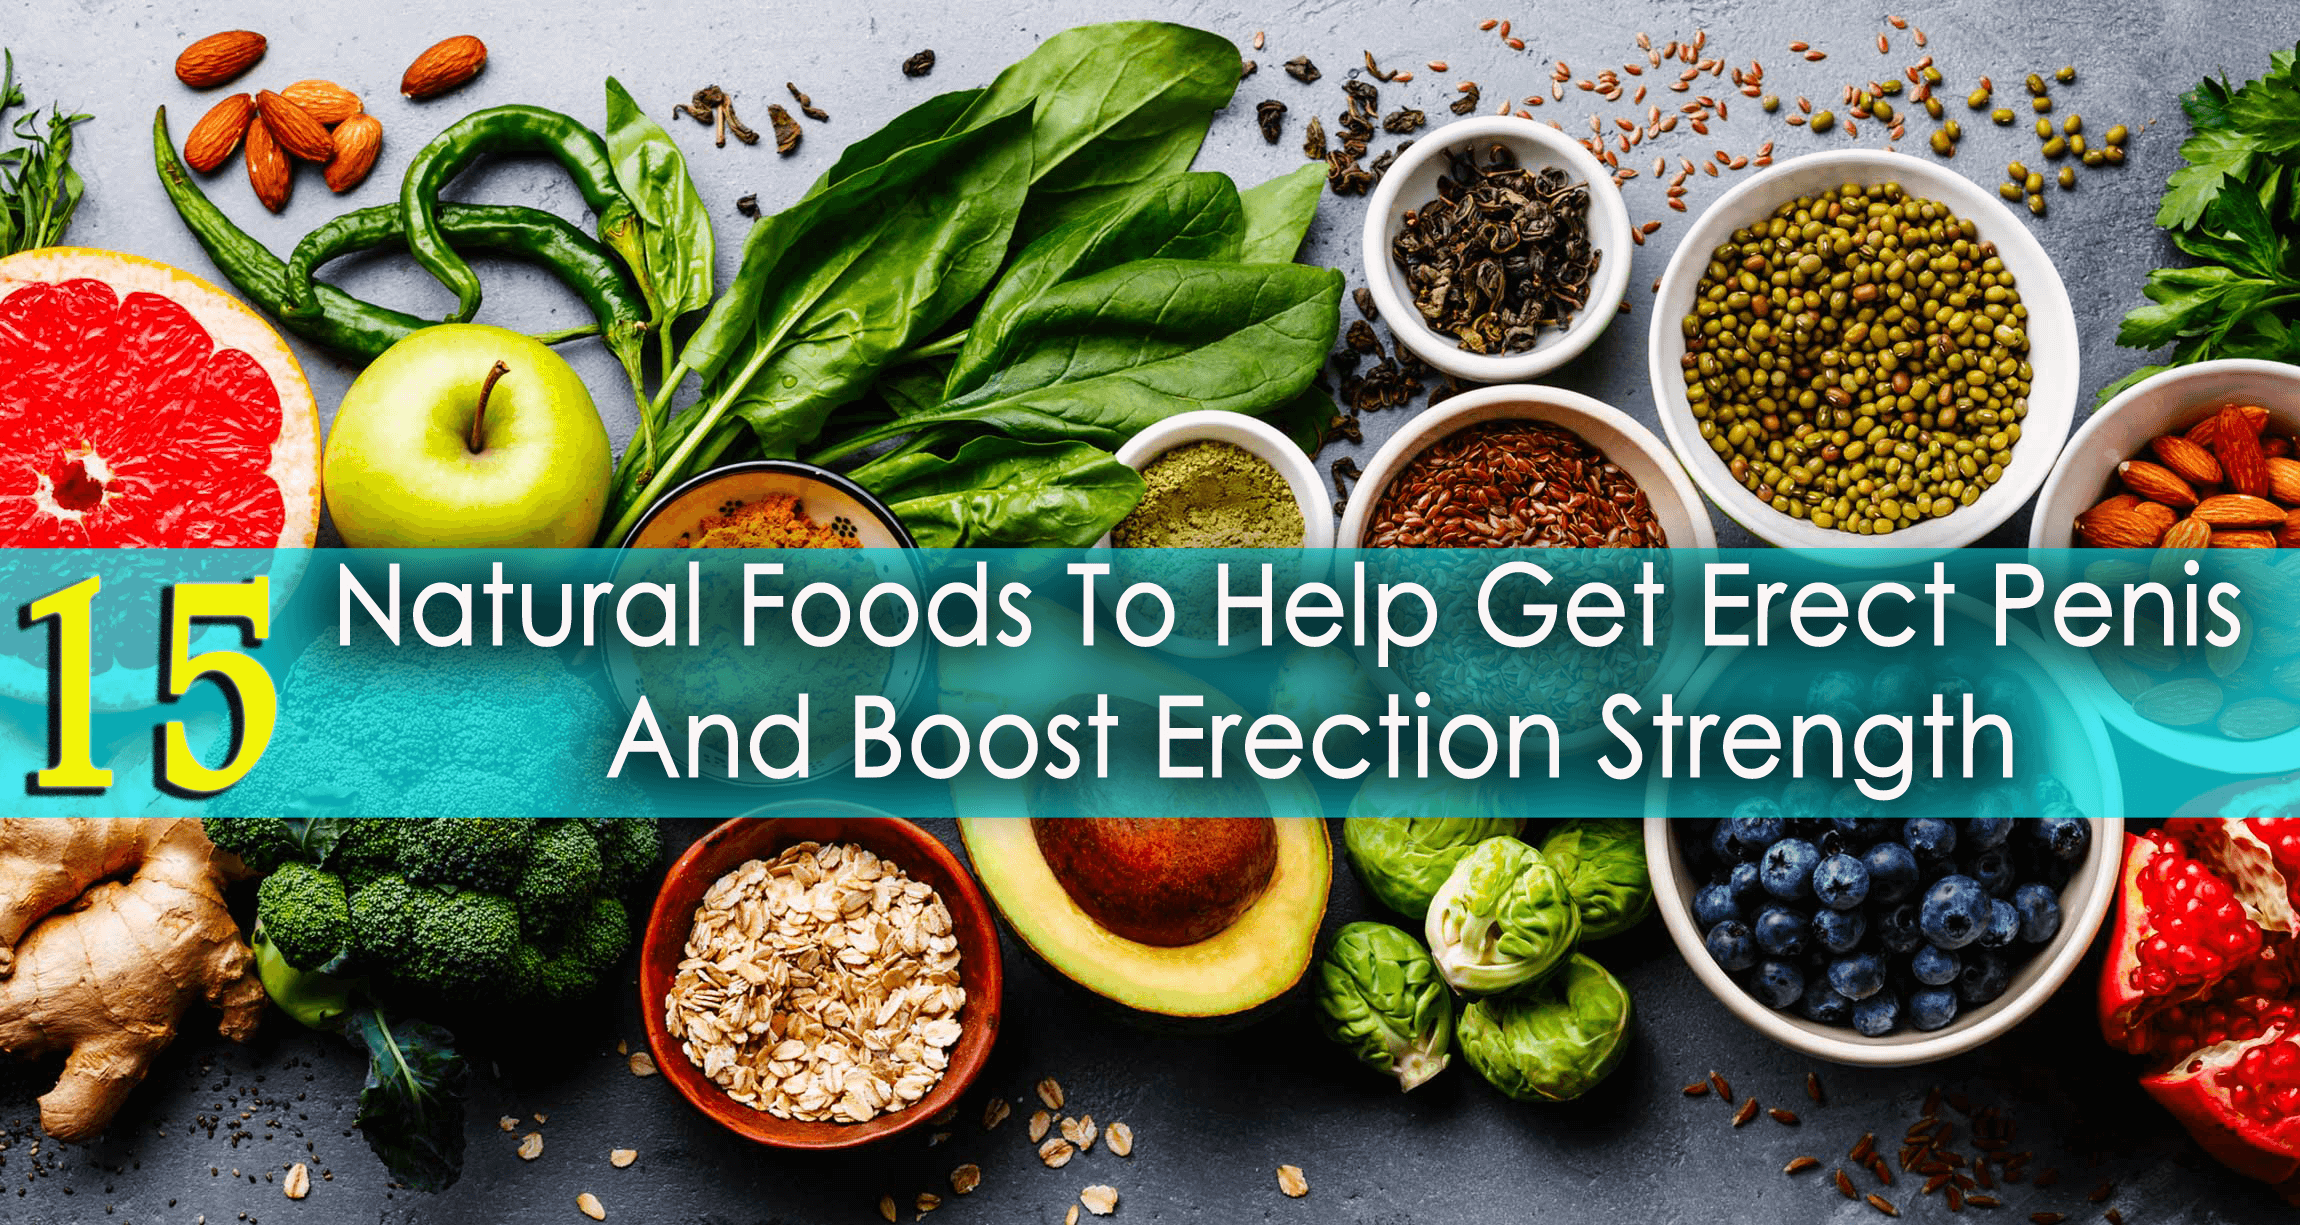 15 Natural Foods To Help Get Erect Penis And Boost Erection Strength